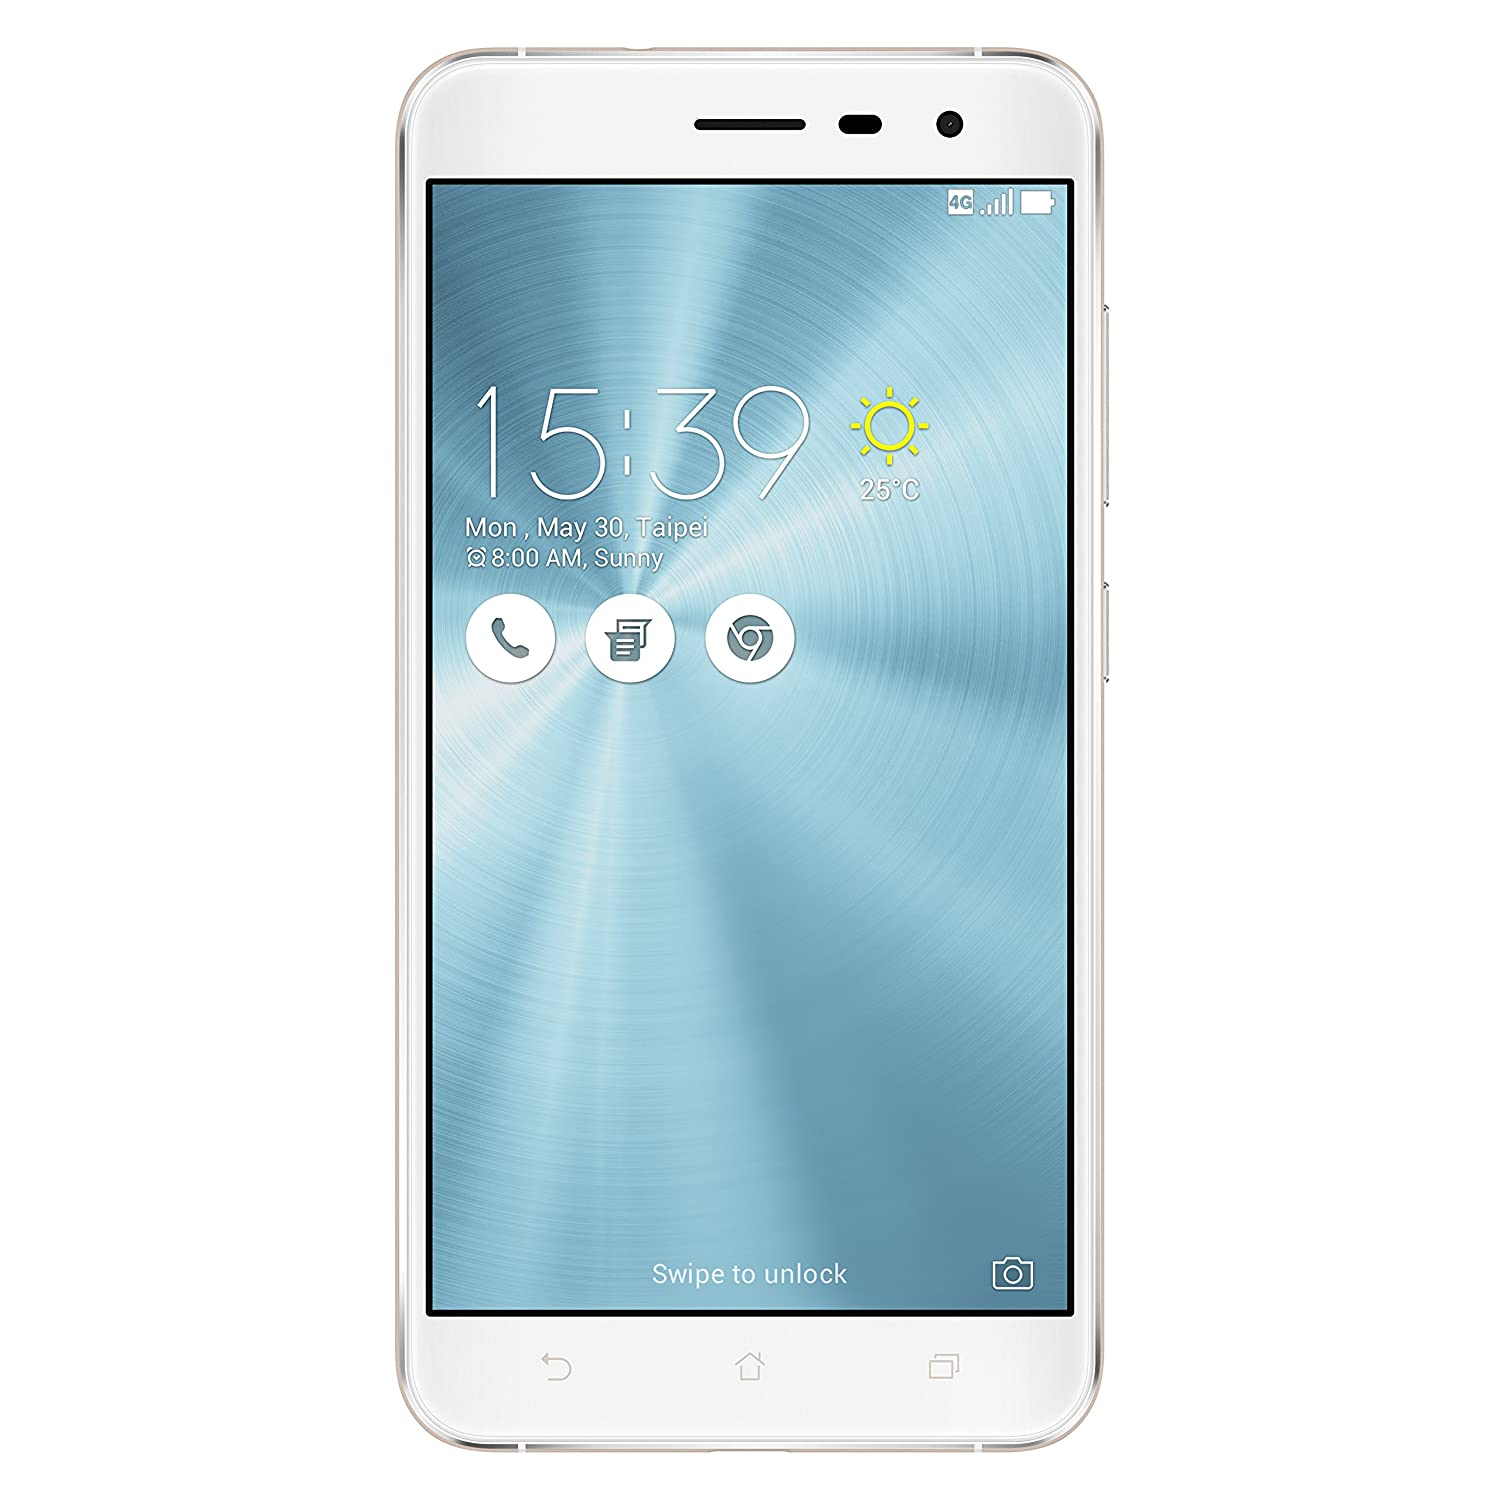 Amazon Canada] Hot!!! One day only!!! ASUS Zenfone 3 5.5\